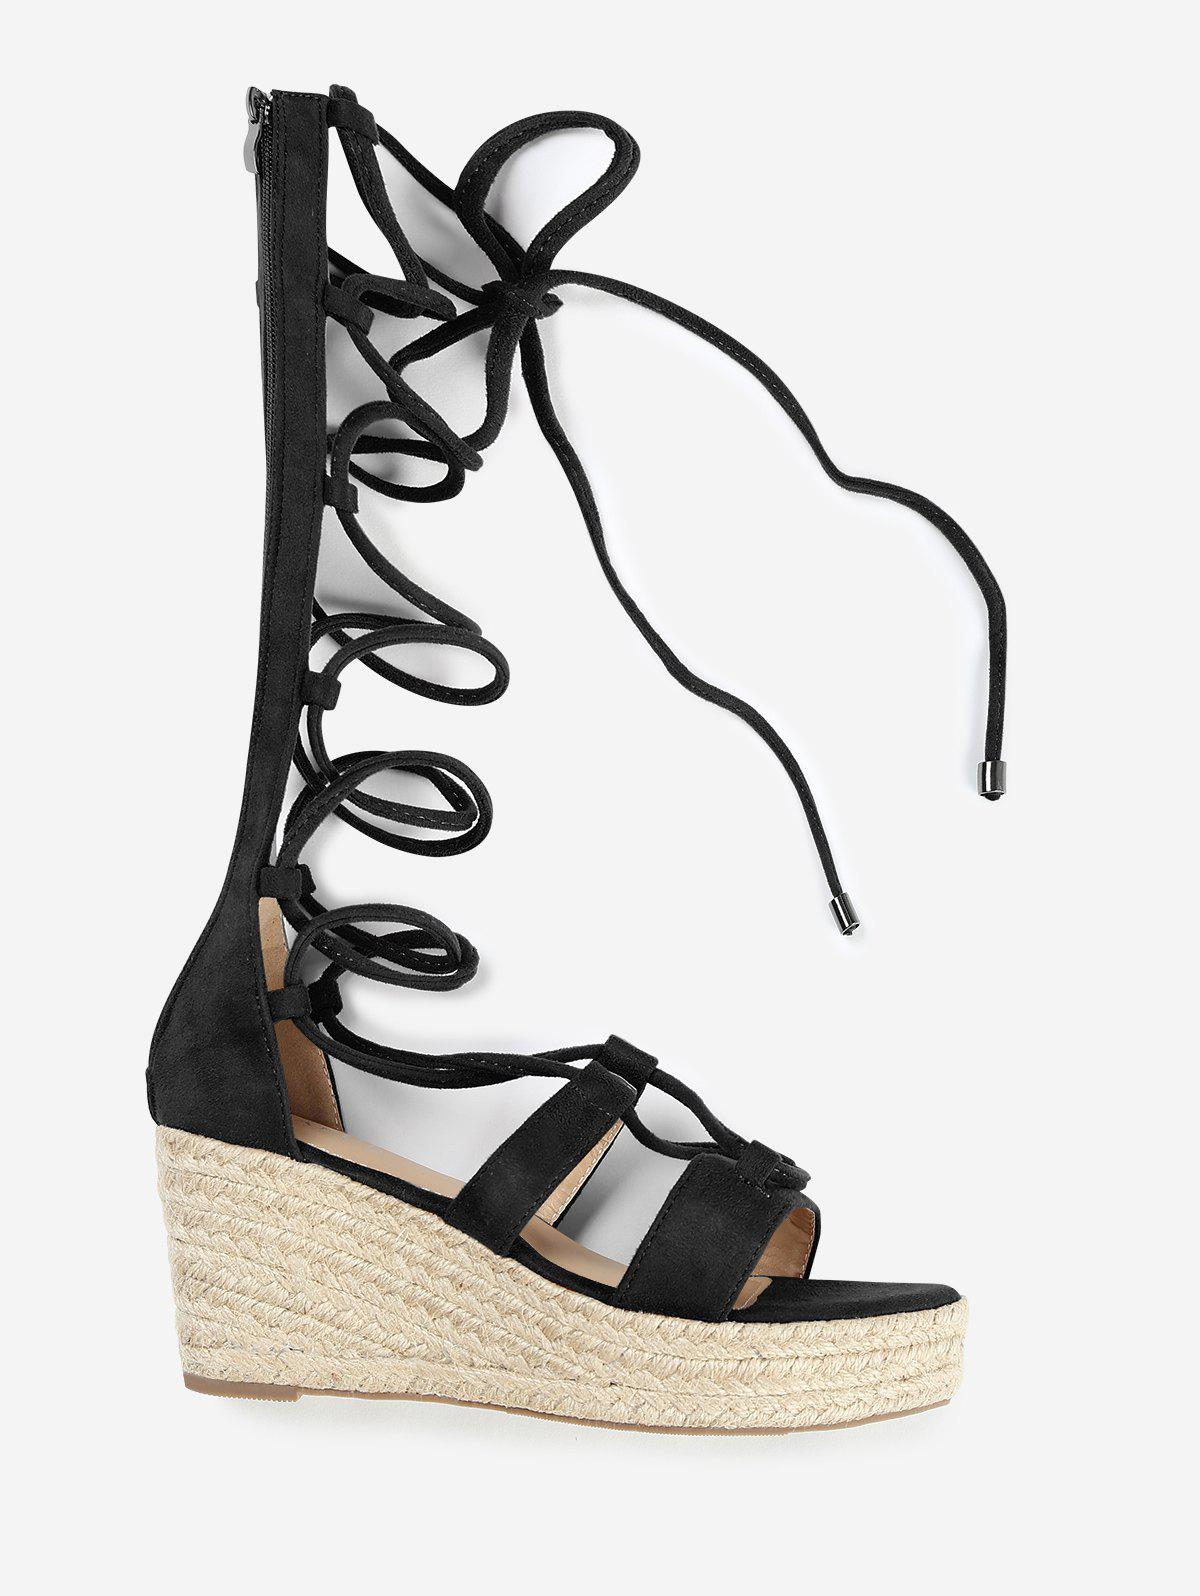 New ZAFUL Lace Up Wedge Heel Sandals